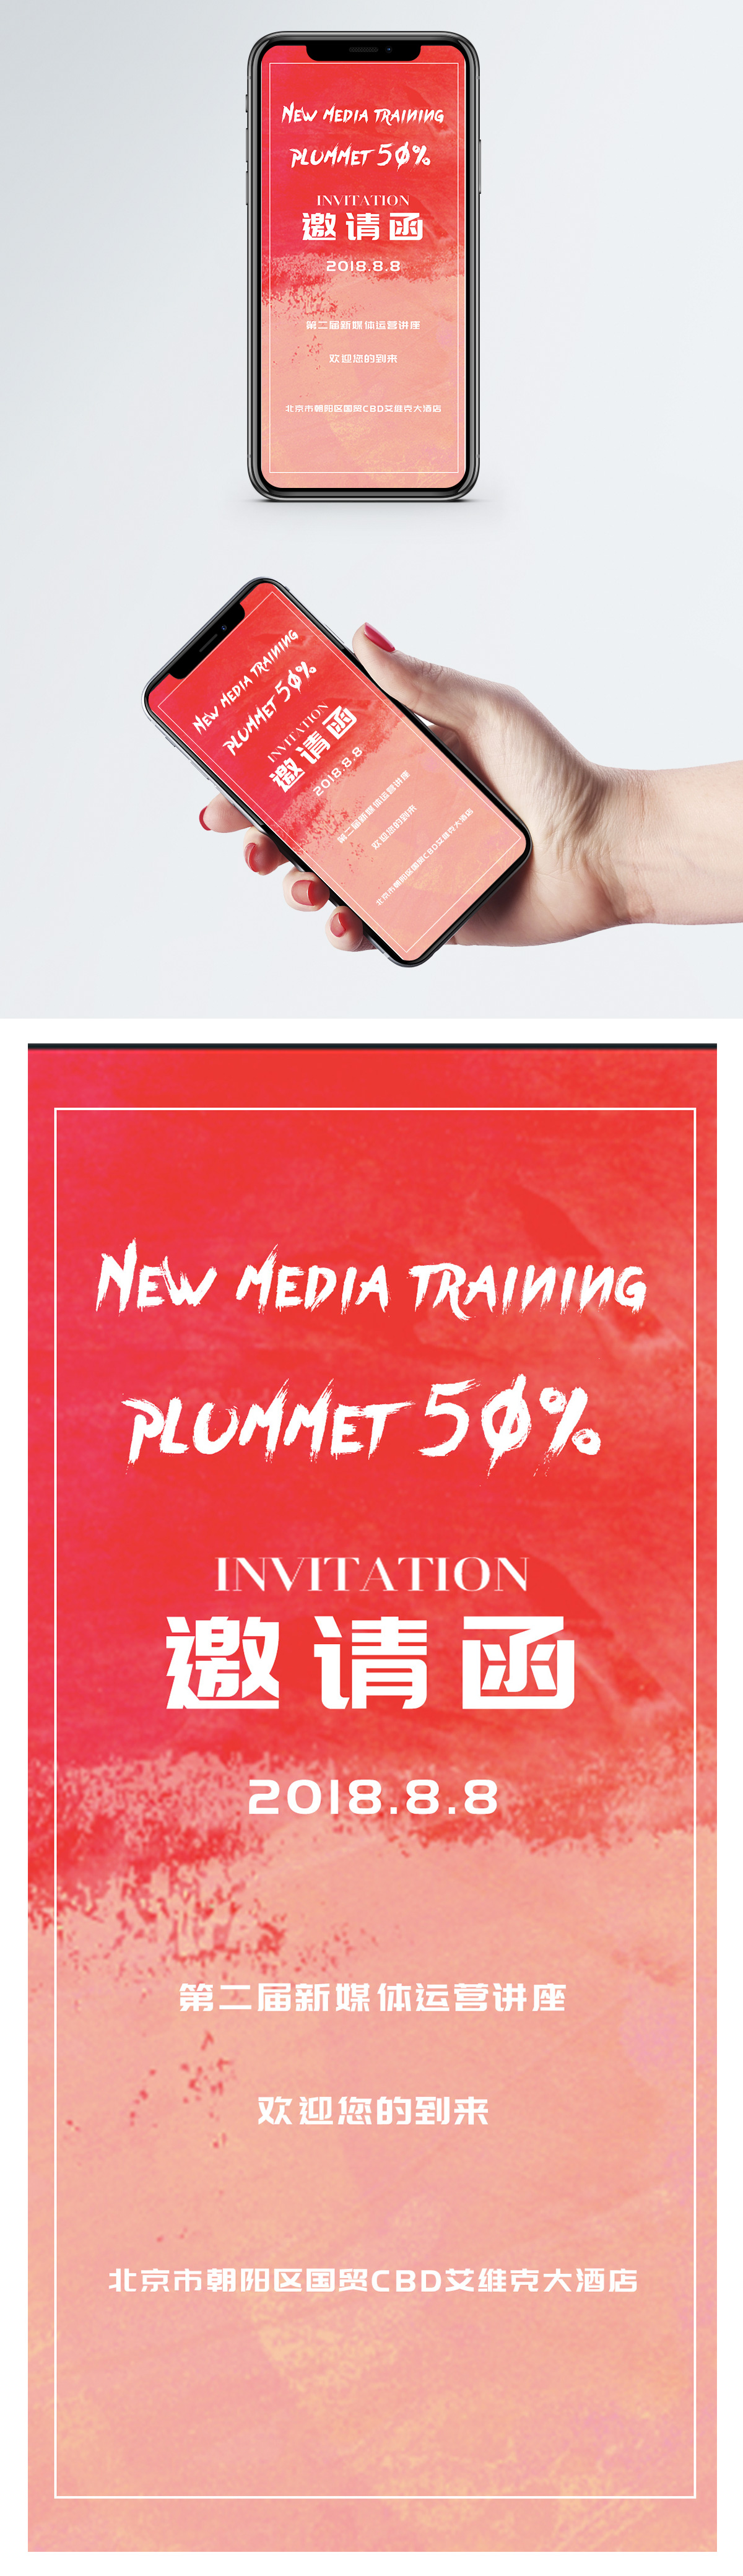 Invitation letter for new media training image_picture